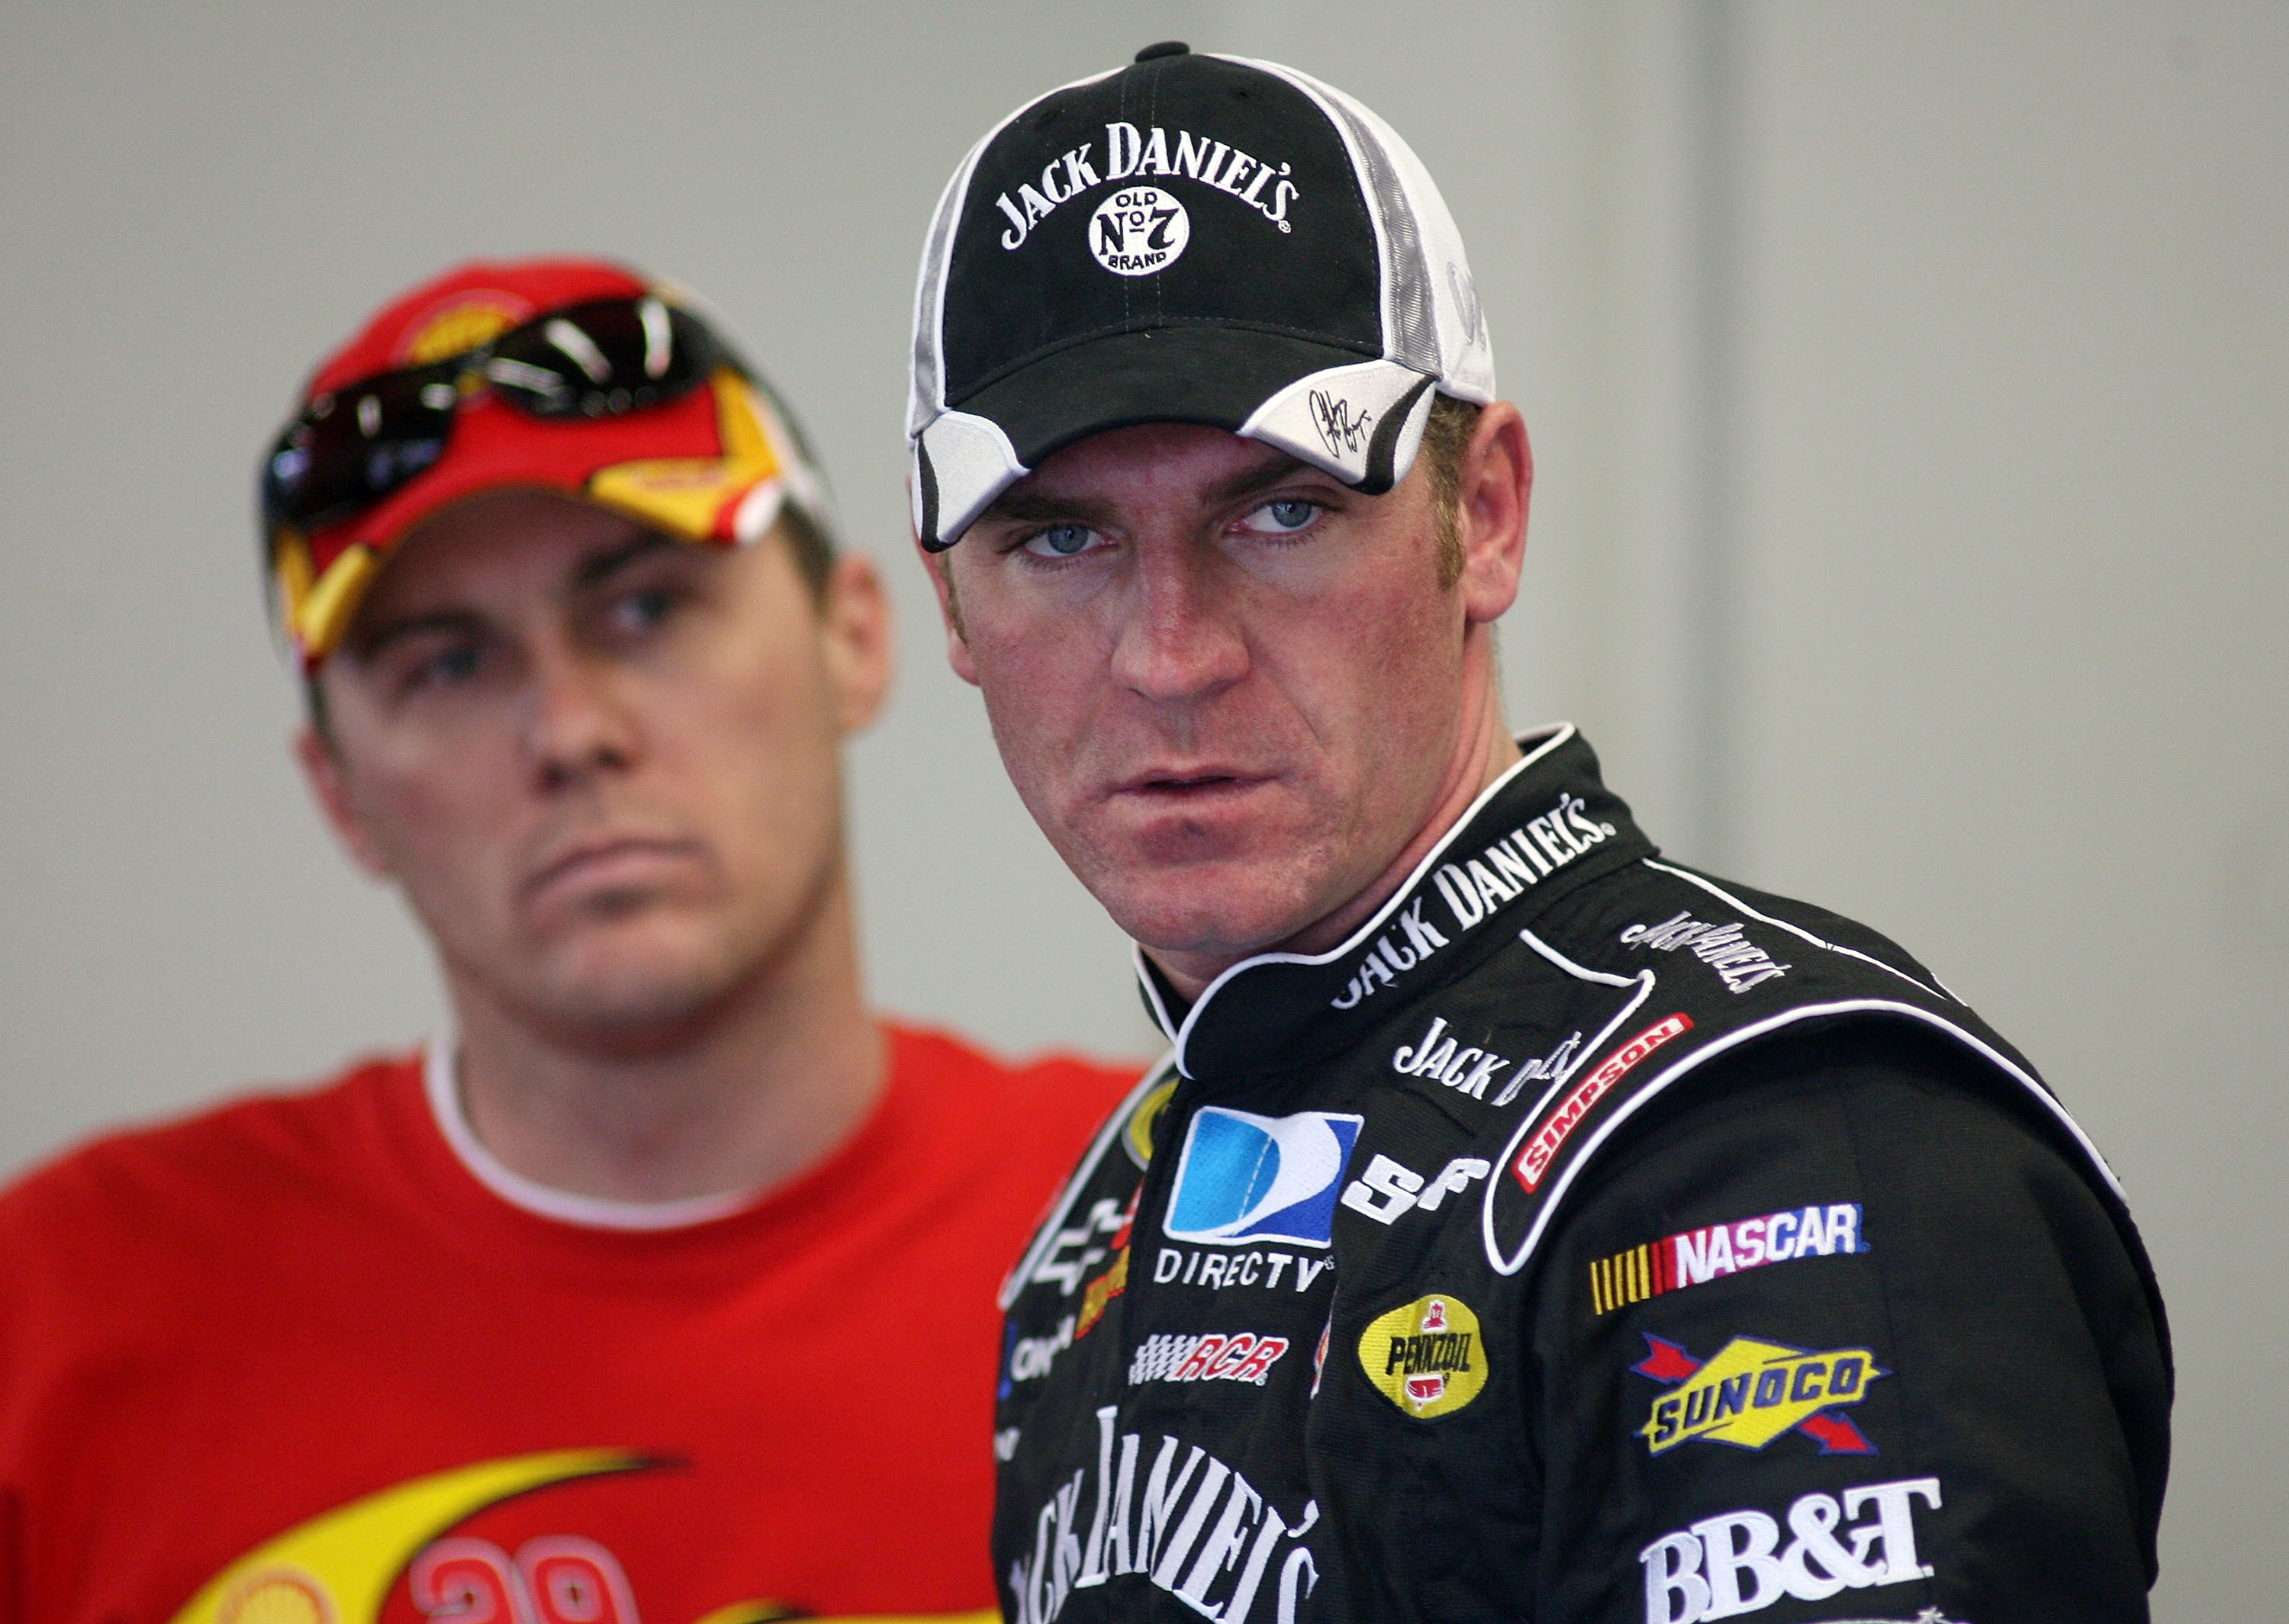 Clint Bowyer's teammate Kevin Harvick has won the Bud Shootout the last two years.